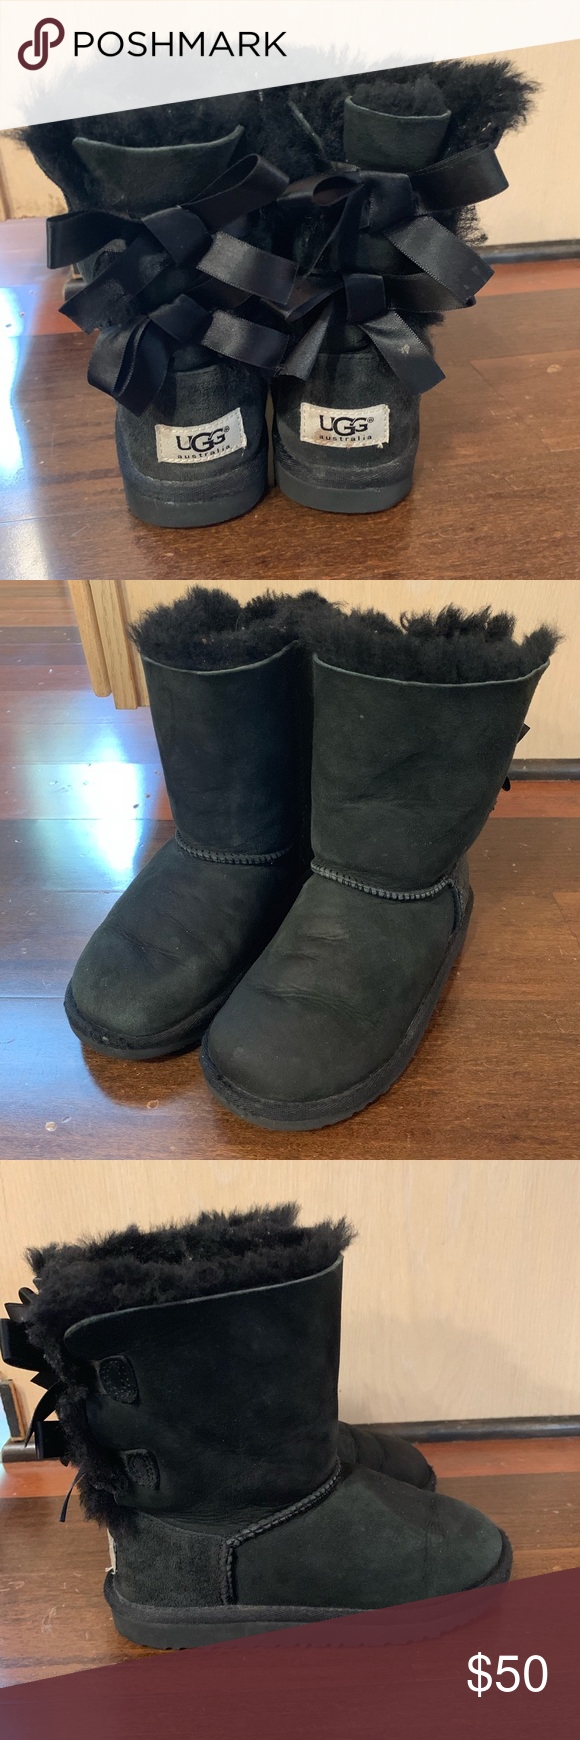 girls bailey bow Ugg boots Excellent condition. Black. Size 13. UGG Shoes Boots #uggbootsoutfitblackgirl